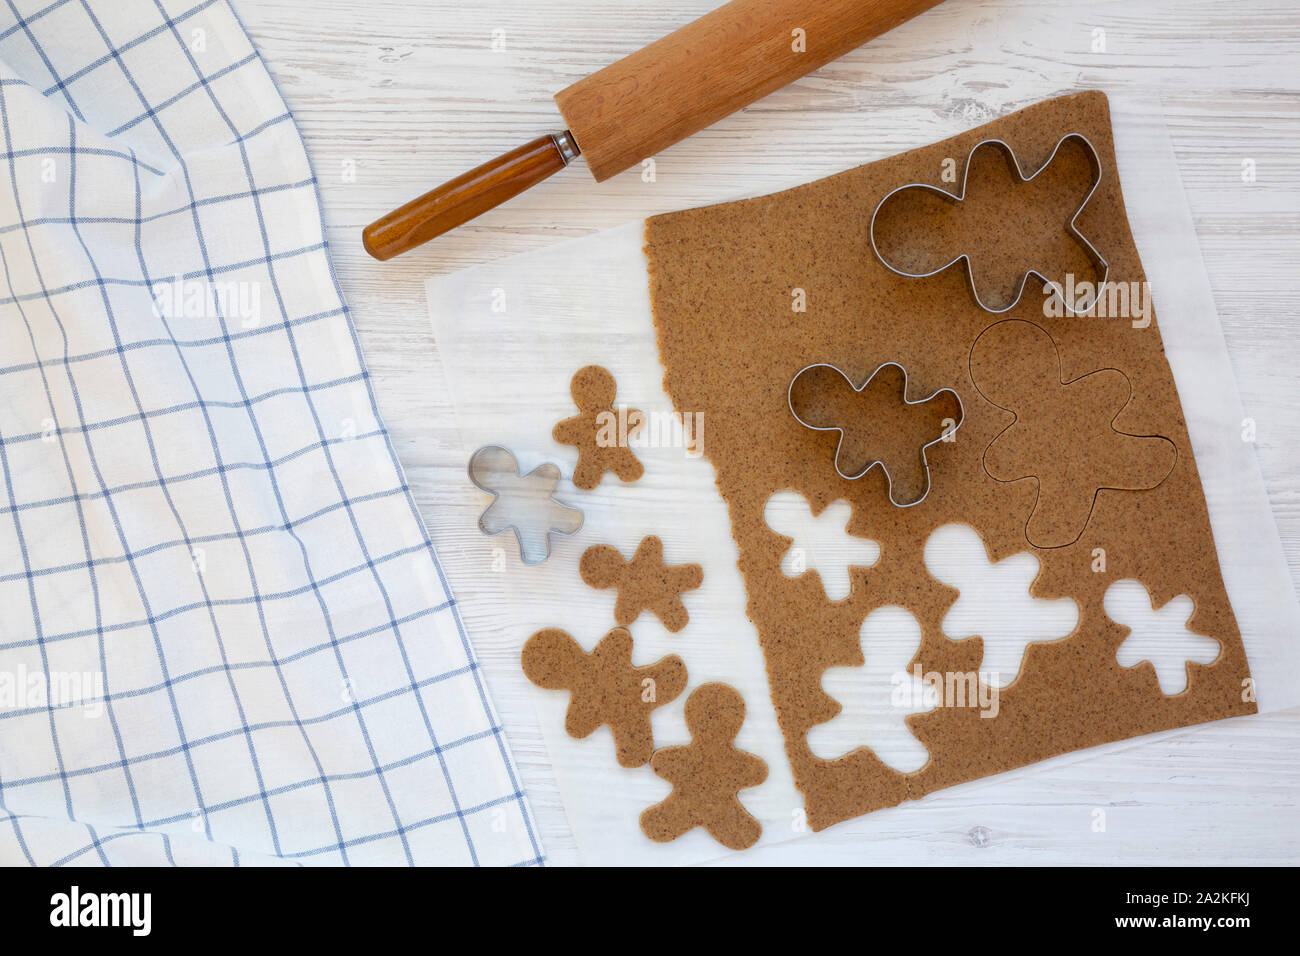 Homemade raw dough for cooking Christmas cookies on a white wooden background, top view. Flat lay, overhead, from above. Stock Photo